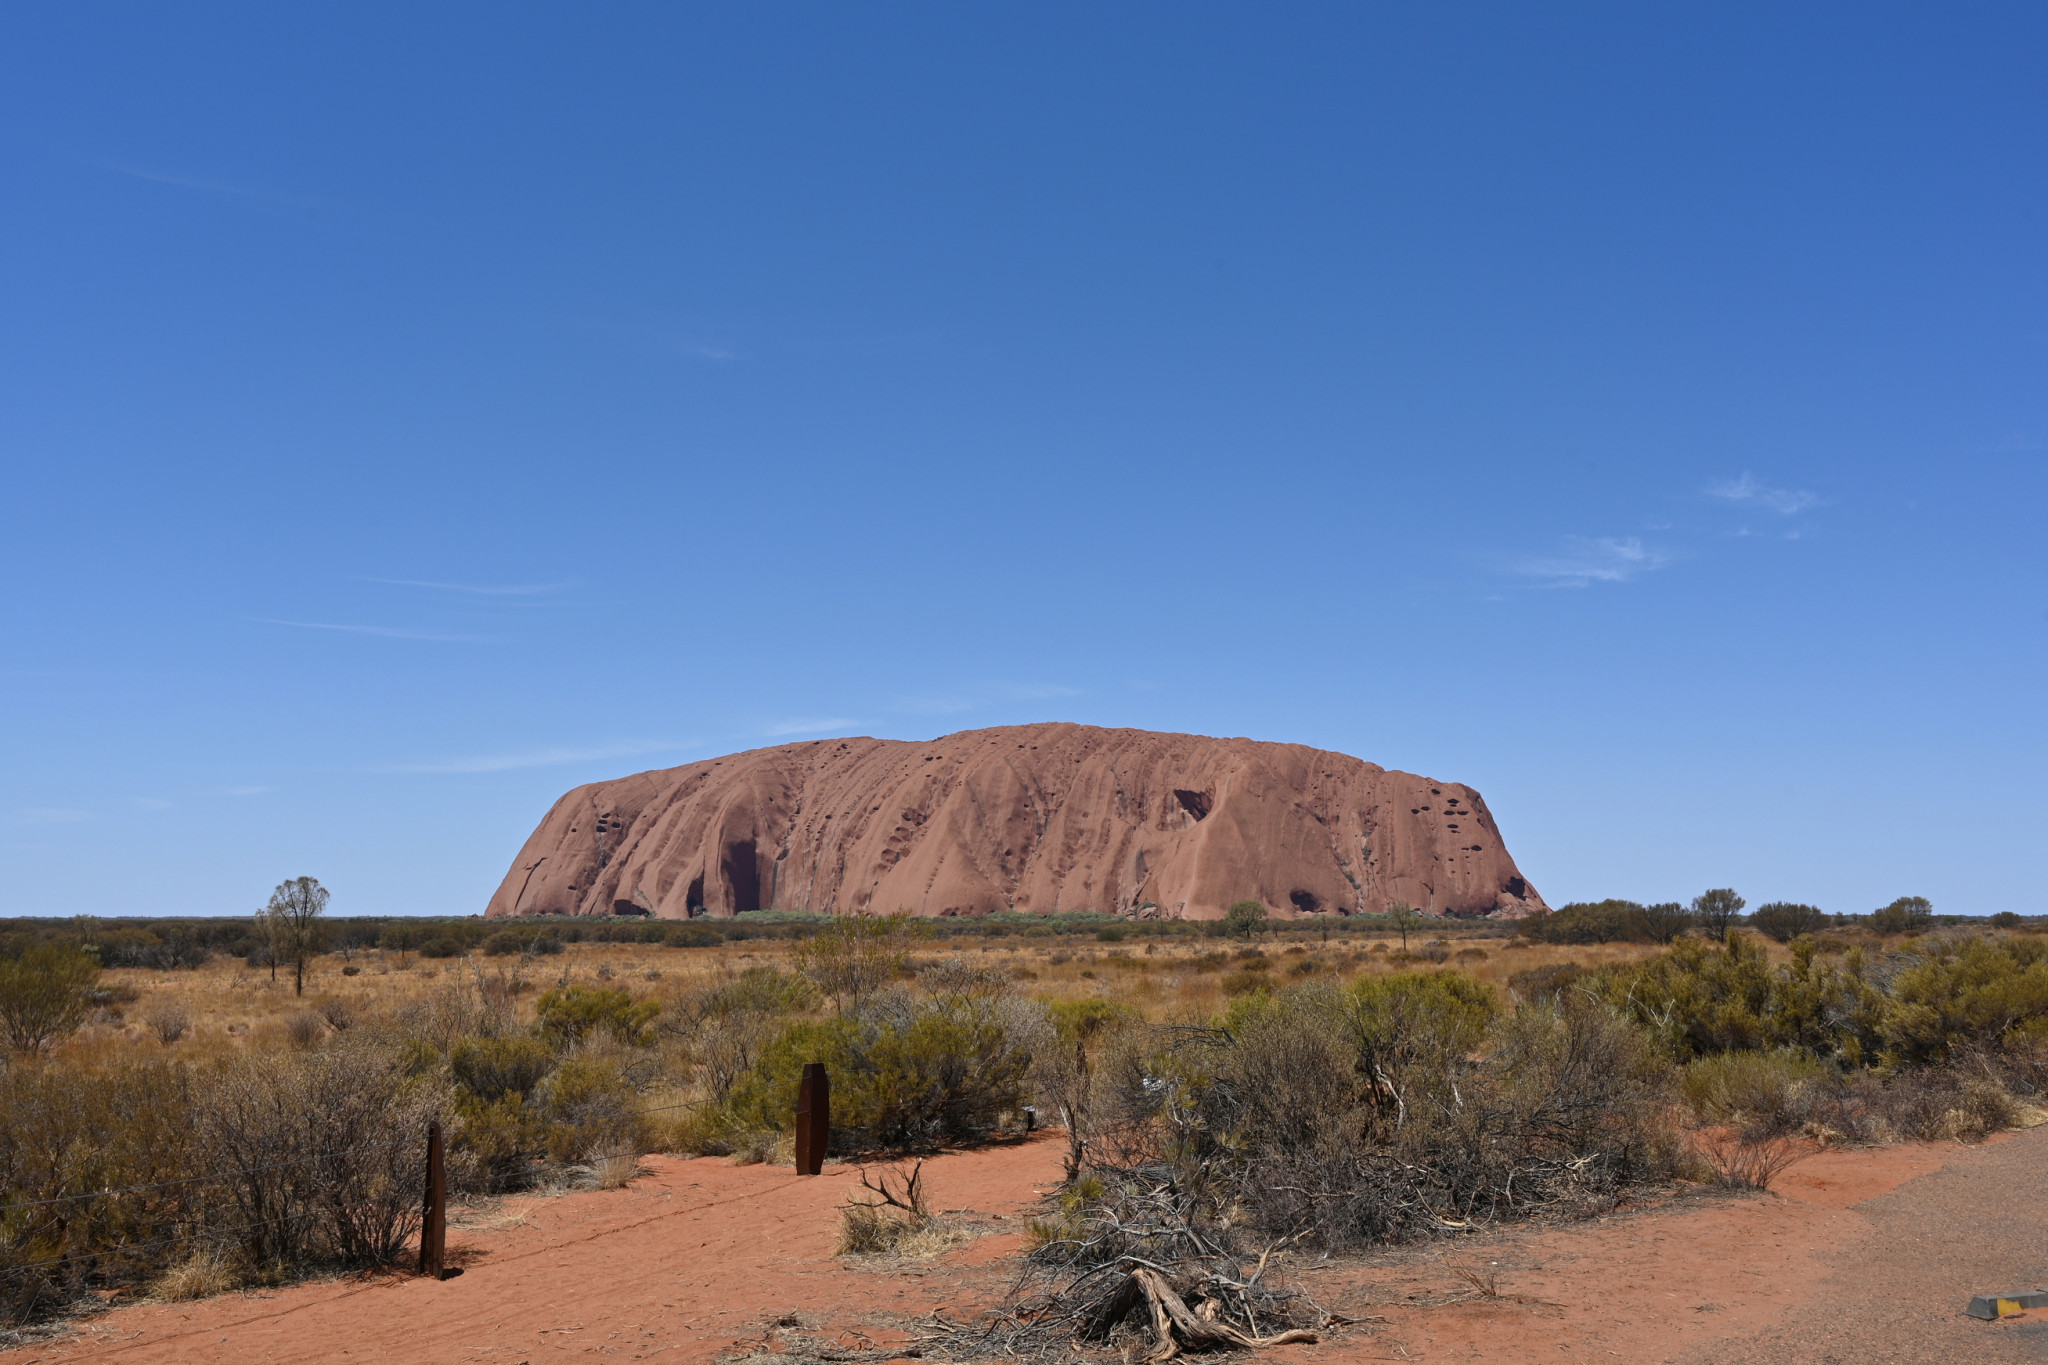 Uluru suggested as location for Baseball5 National Championship in Australia